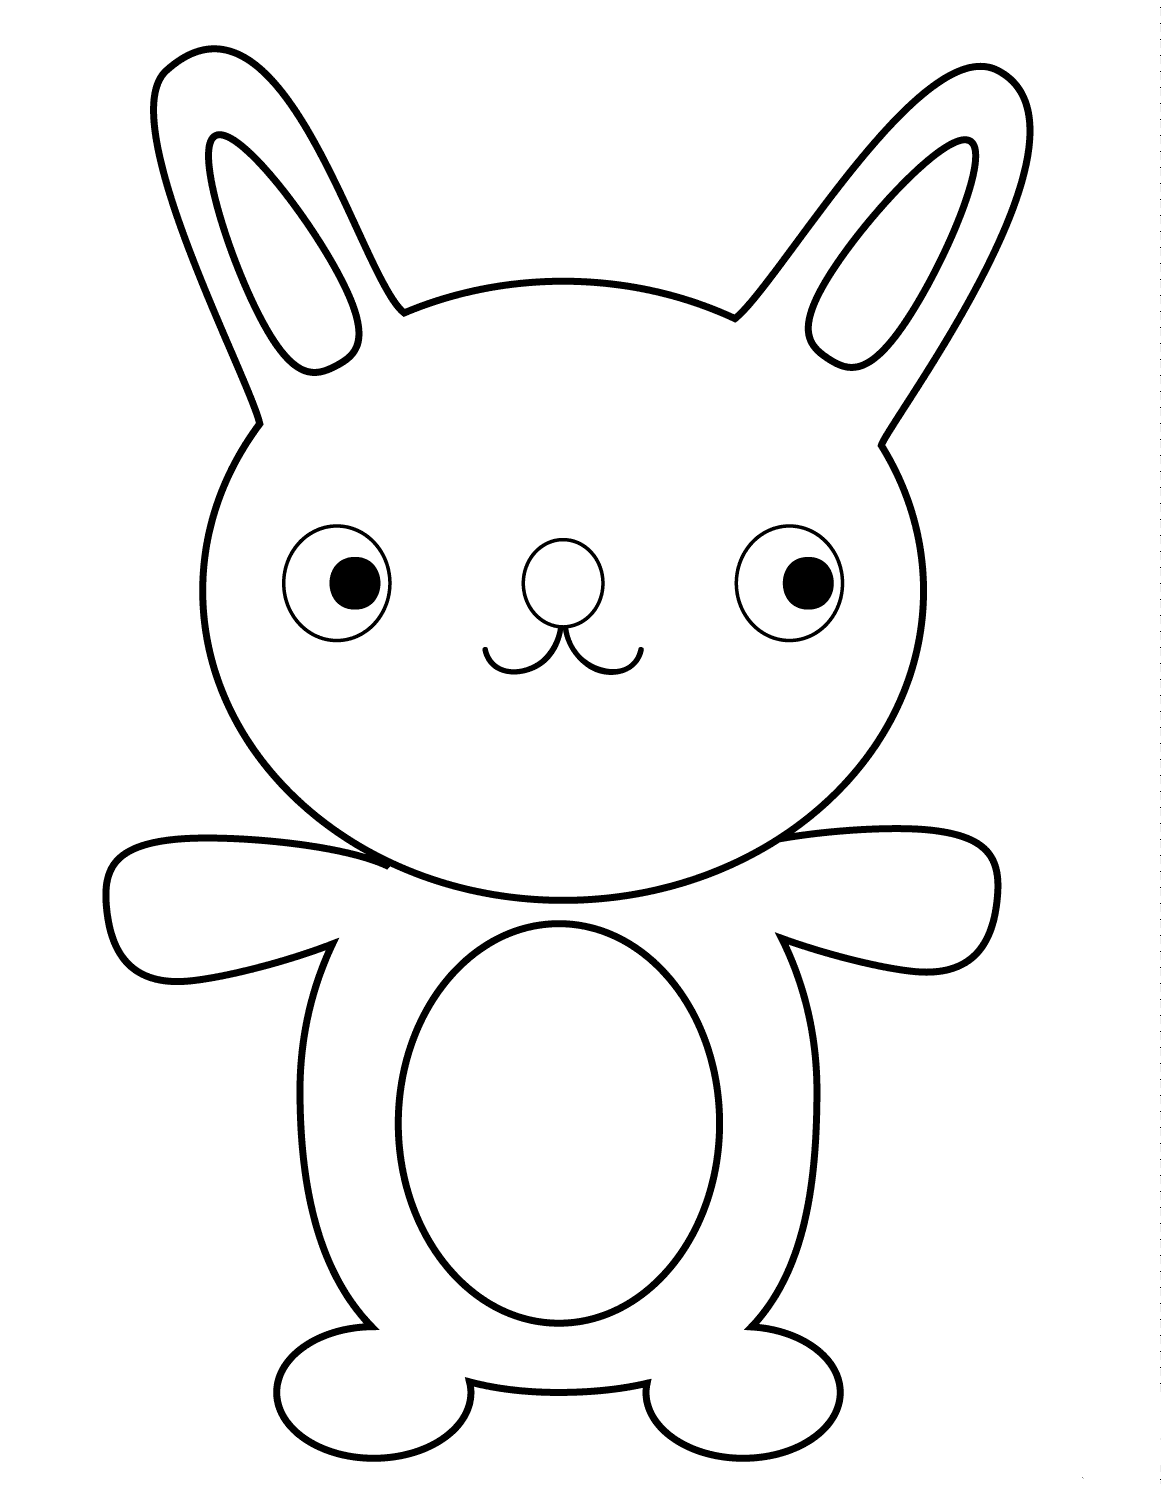 Cartoon Bunny Coloring Page